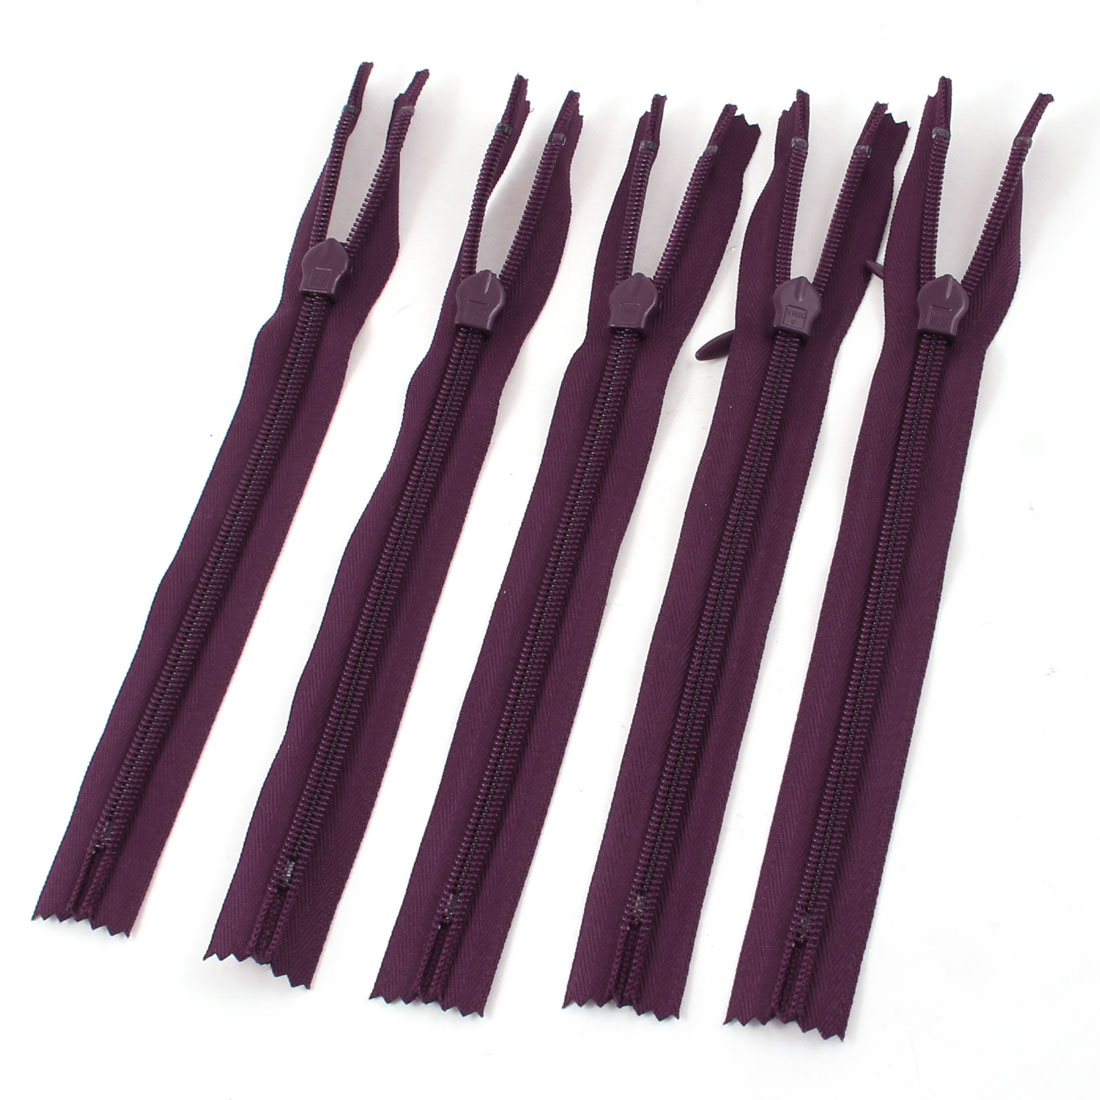 "Burgundy Rectangle Pull Tab Bags Pants Invisible 7.7"" Zipper Fastener 5 Pcs"